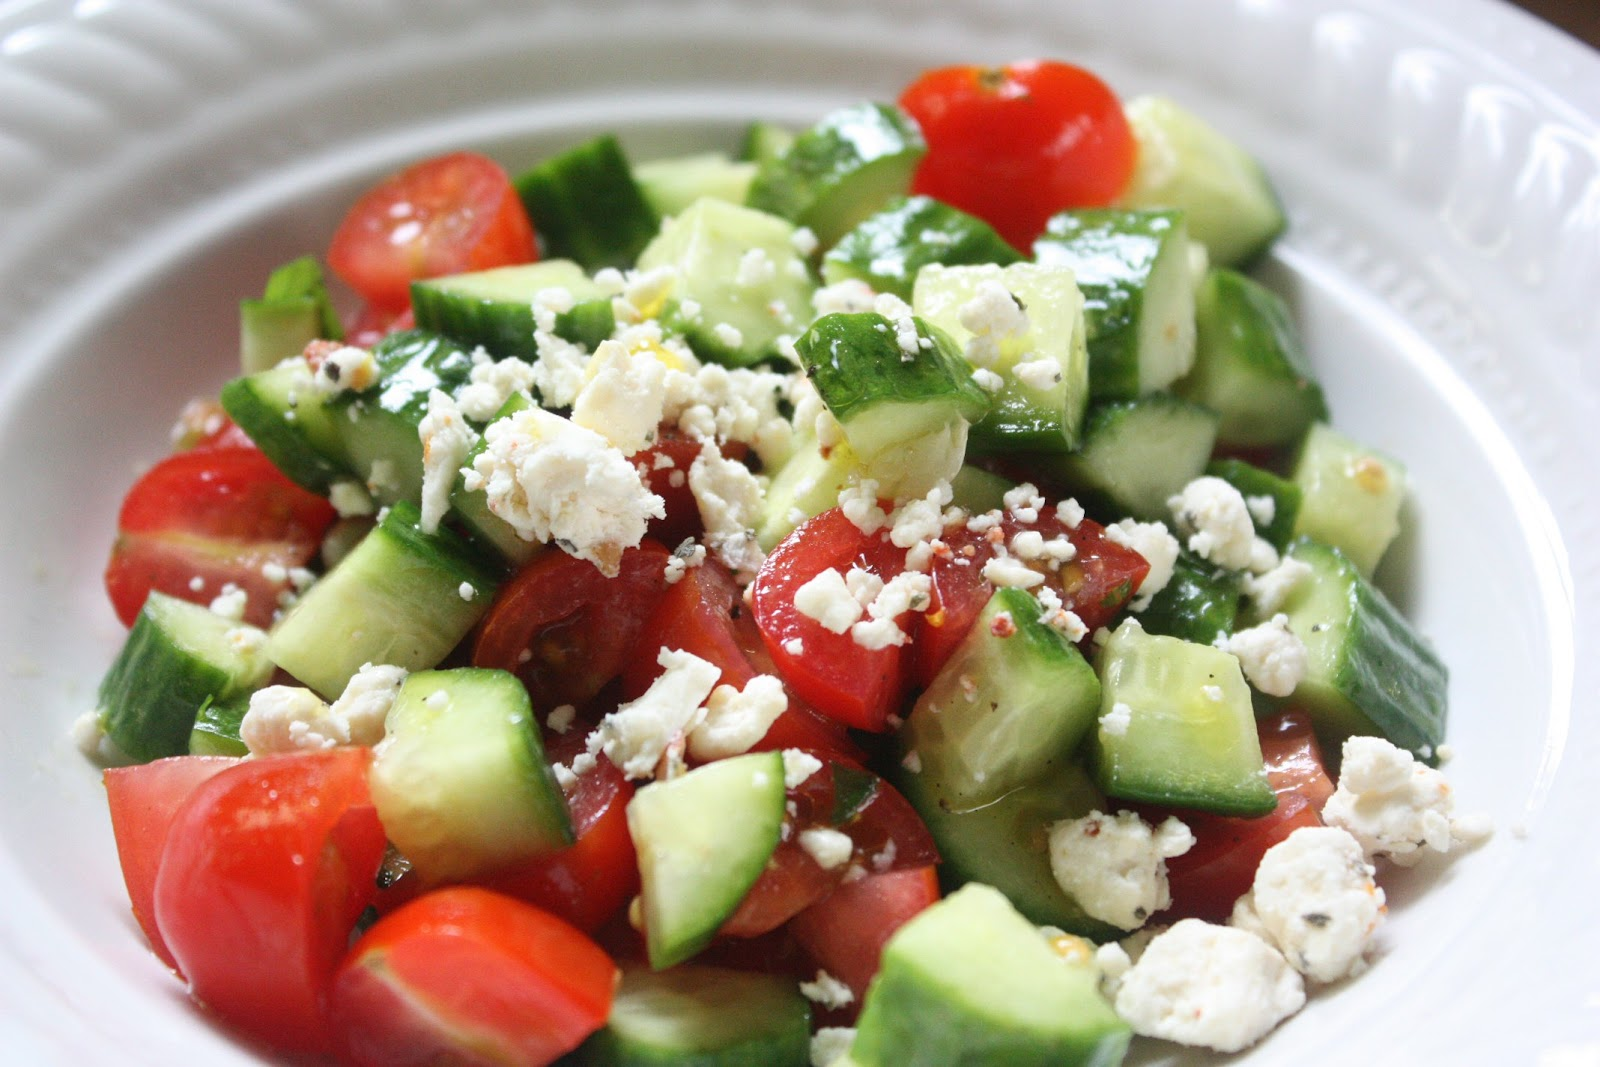 Tomato and Cucumber Salad with Feta | Low-Carbing It